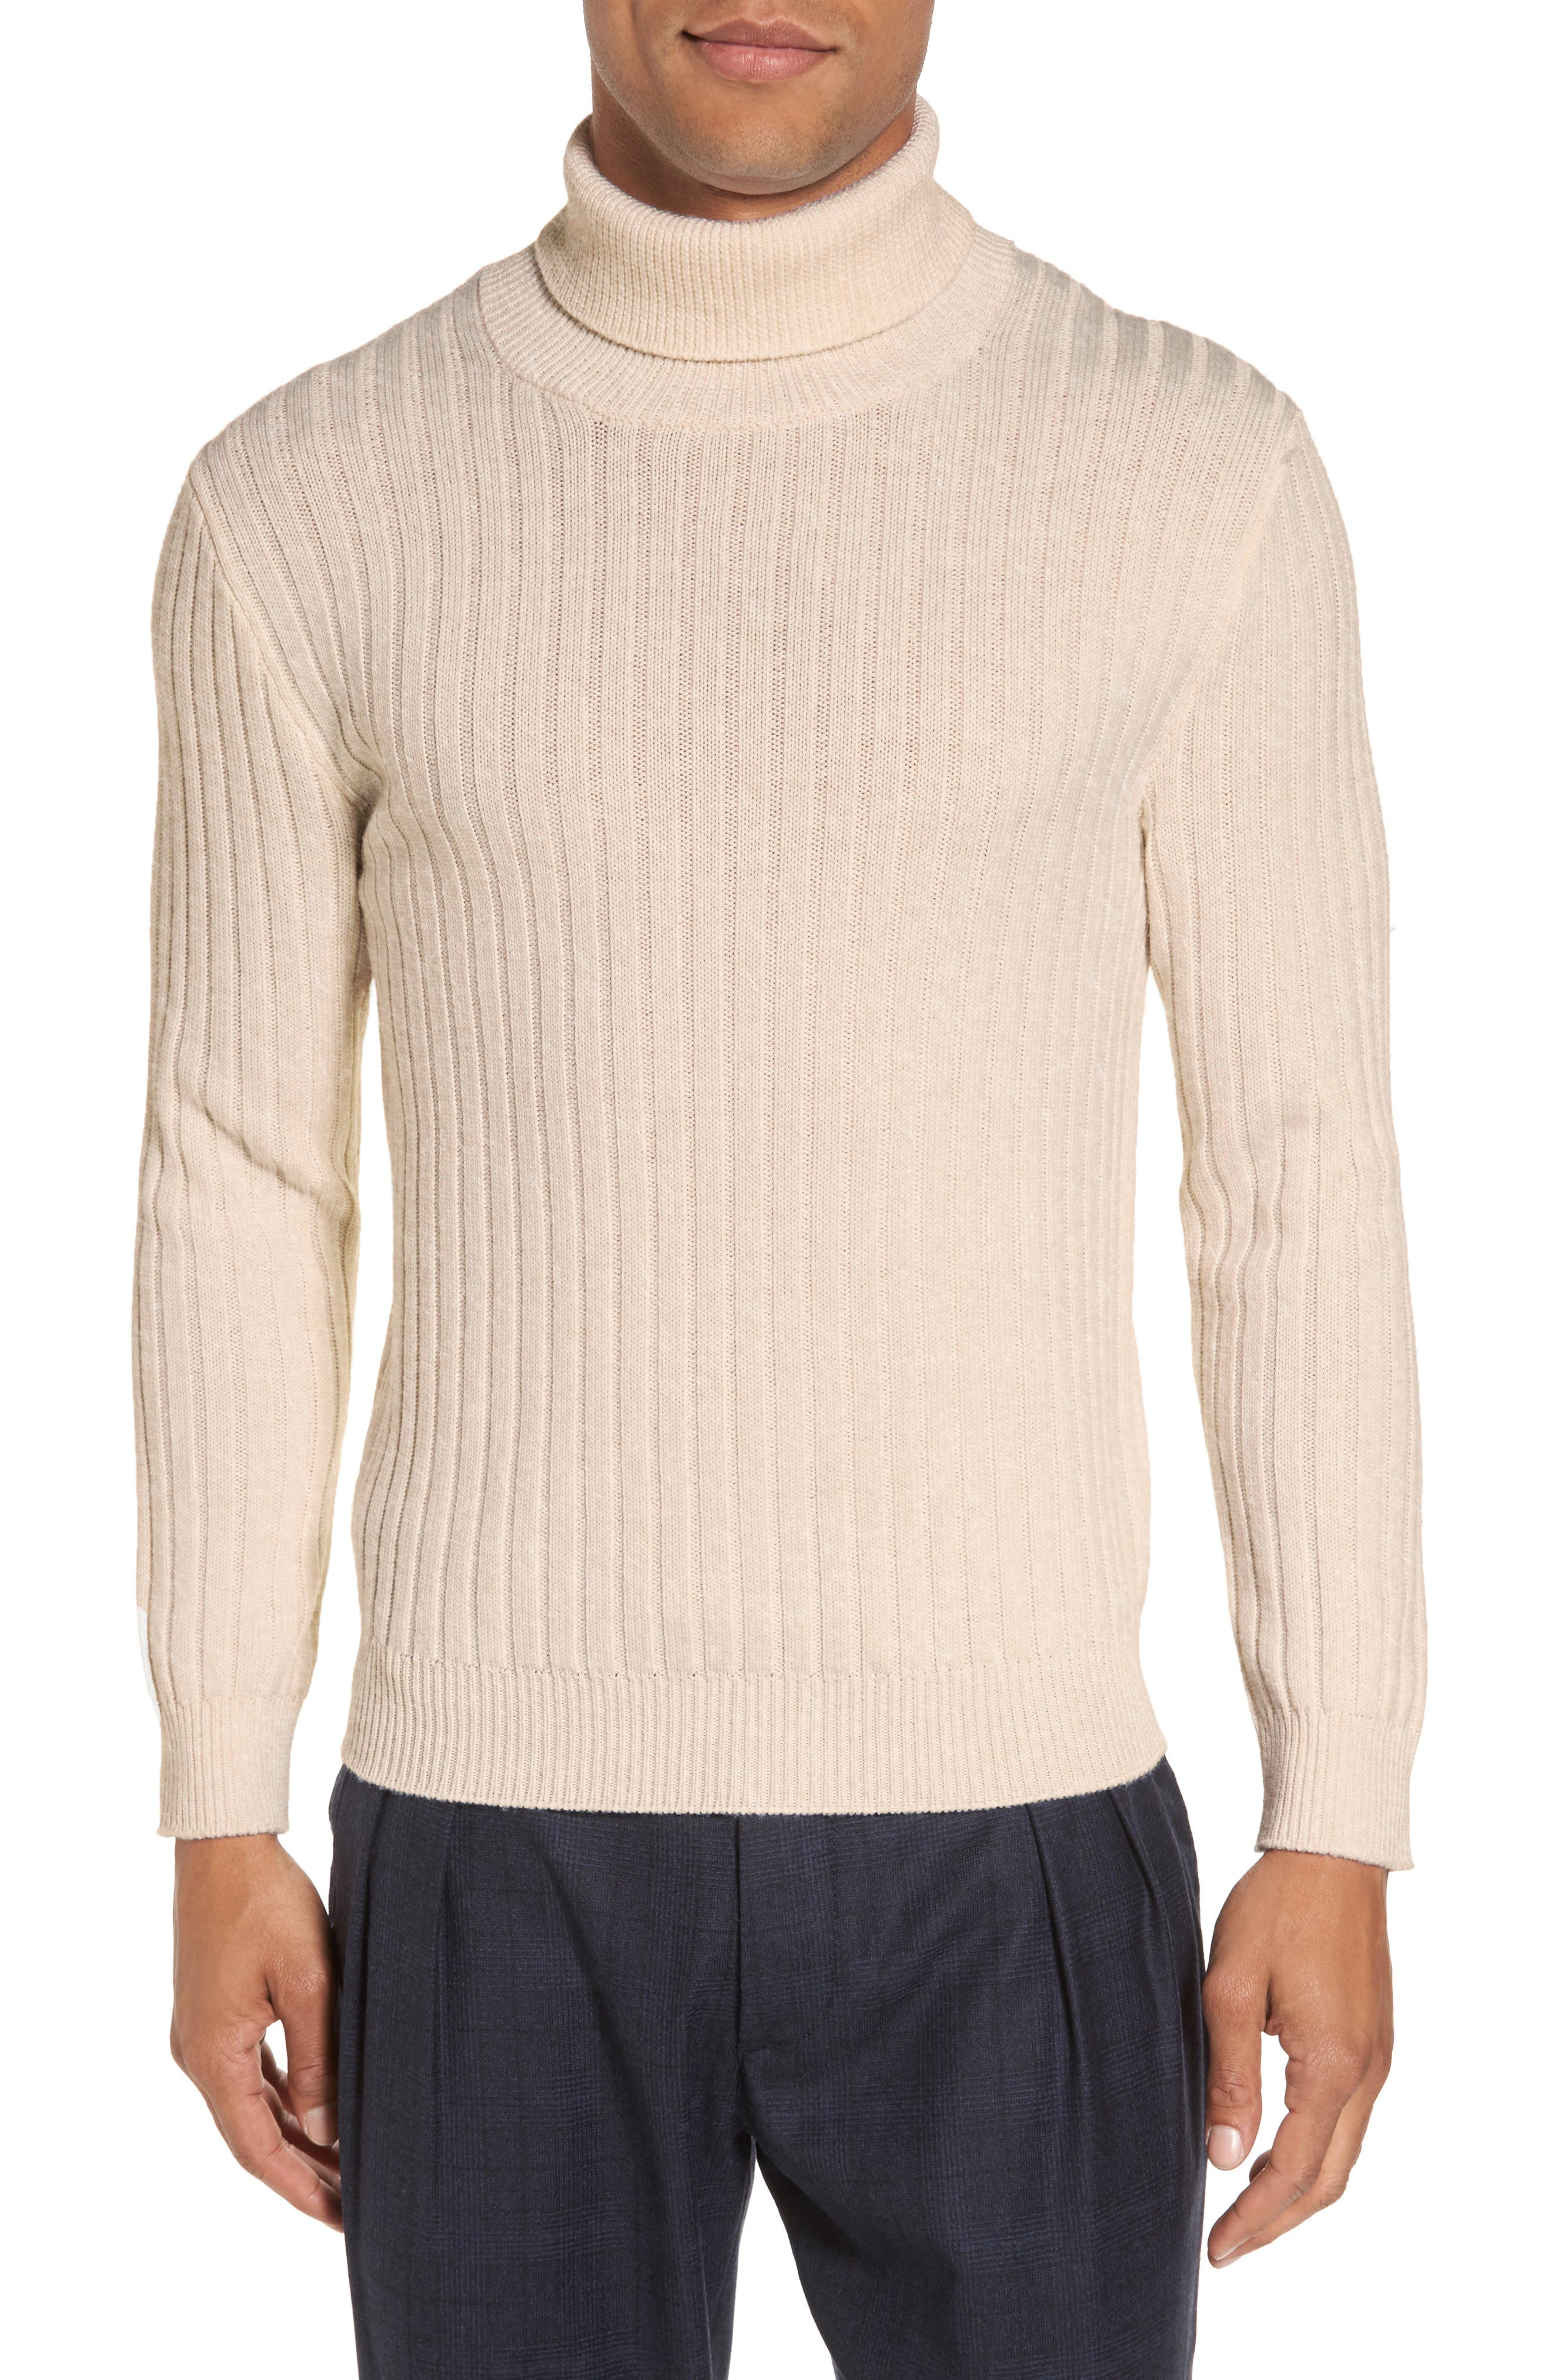 Ribbed Turtleneck Wool Sweater,                             Main thumbnail 1, color,                             250